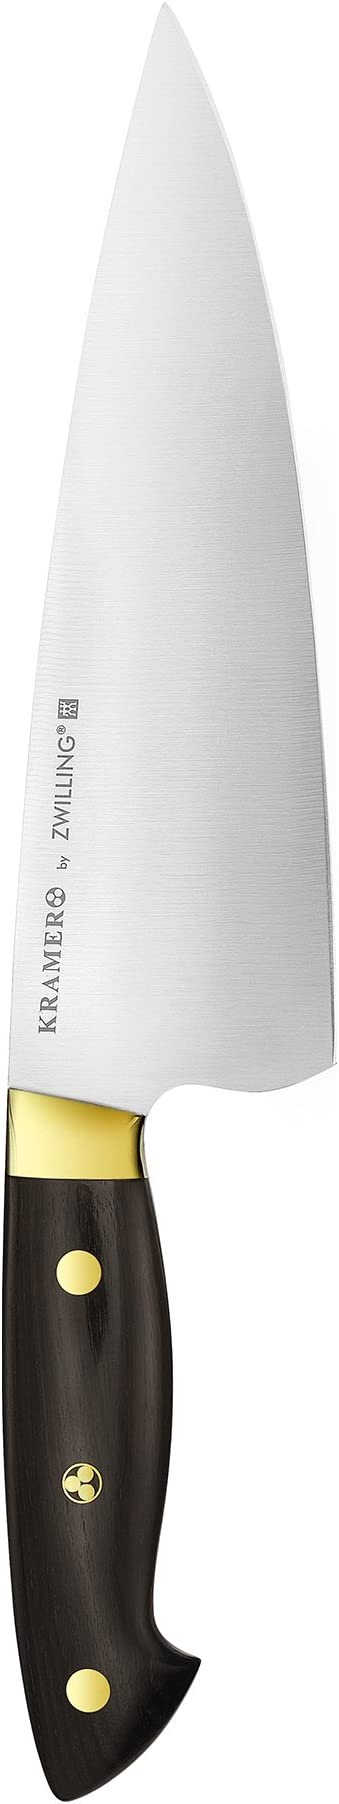 Amazon.com: KRAMER by ZWILLING EUROLINE Carbon Collection ...